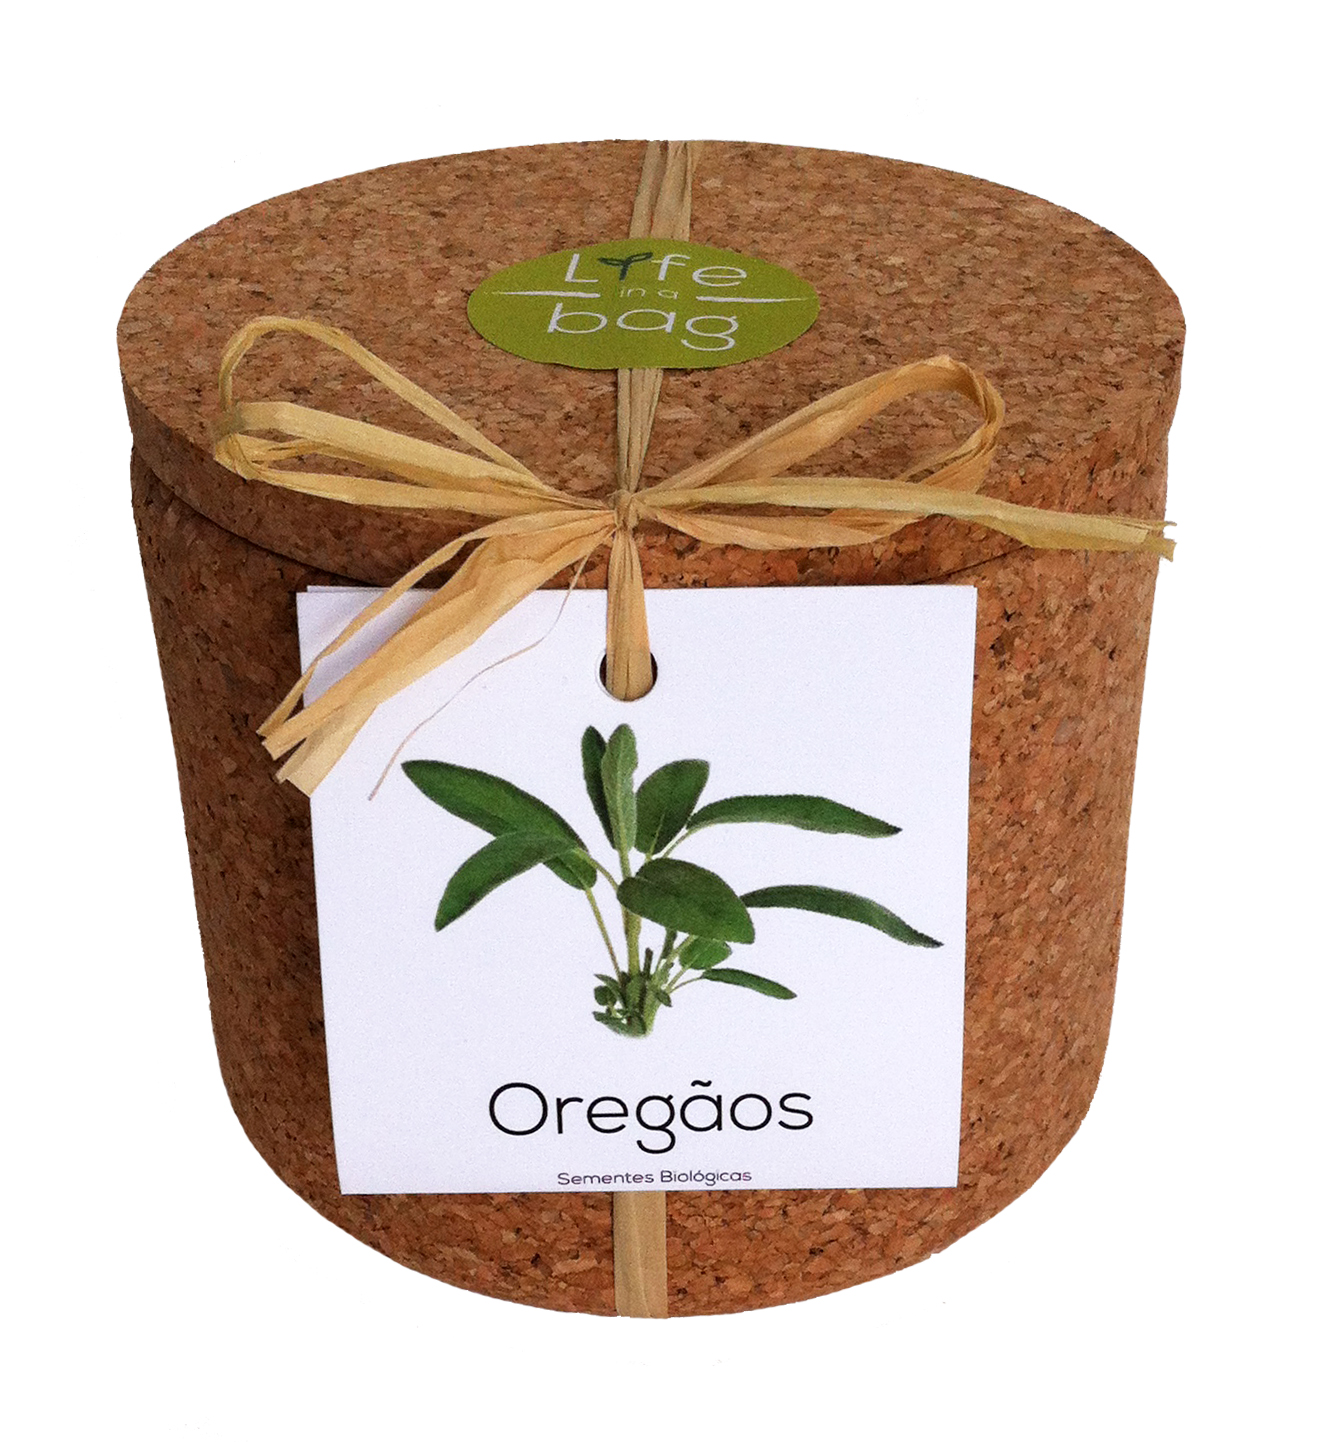 Grow Cork Oregãos